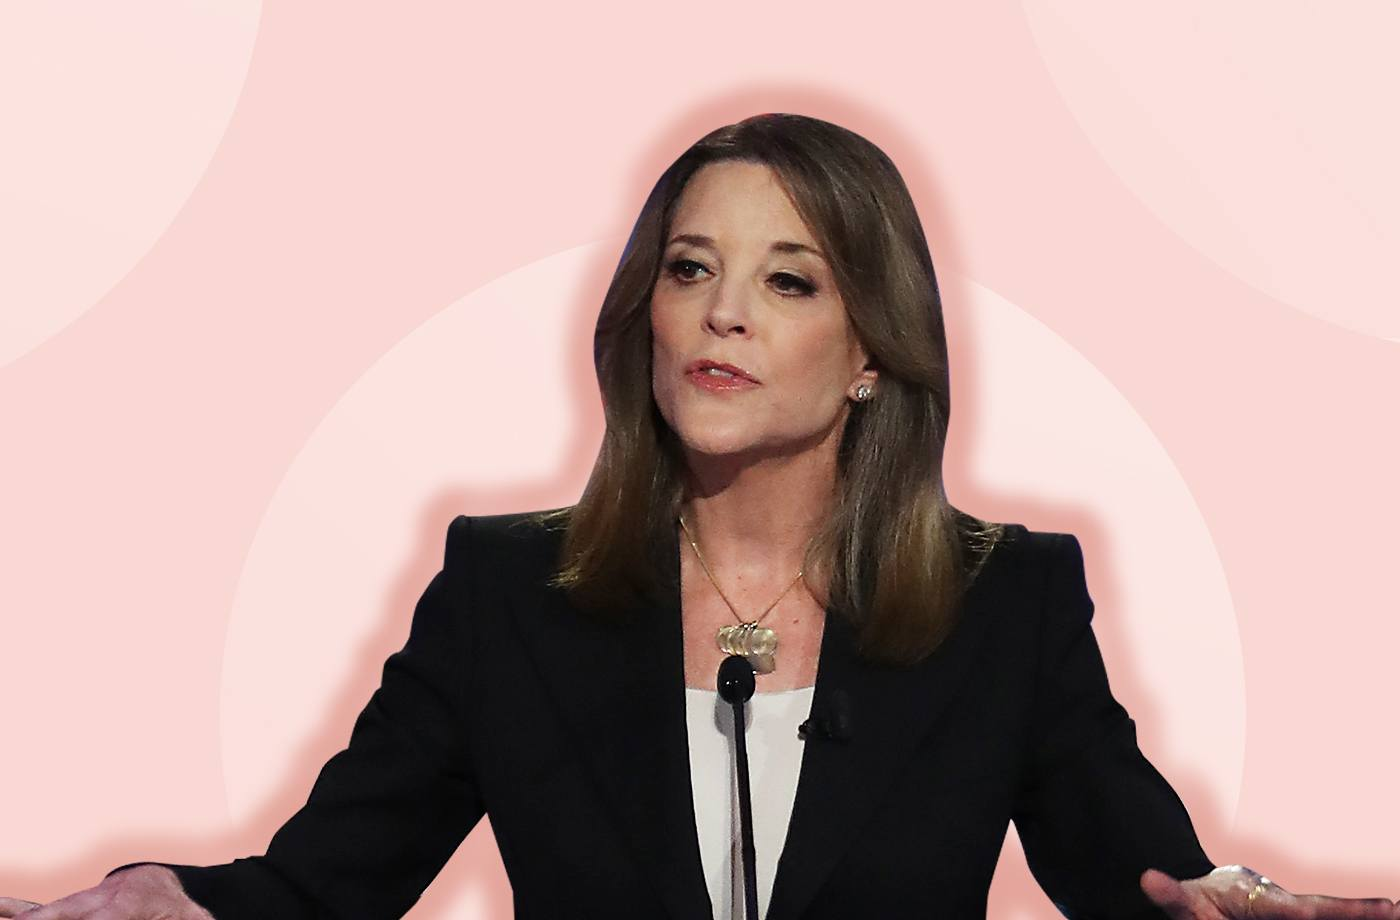 Thumbnail for Marianne Williamson shows why science needs to be an integral part of the wellness conversation